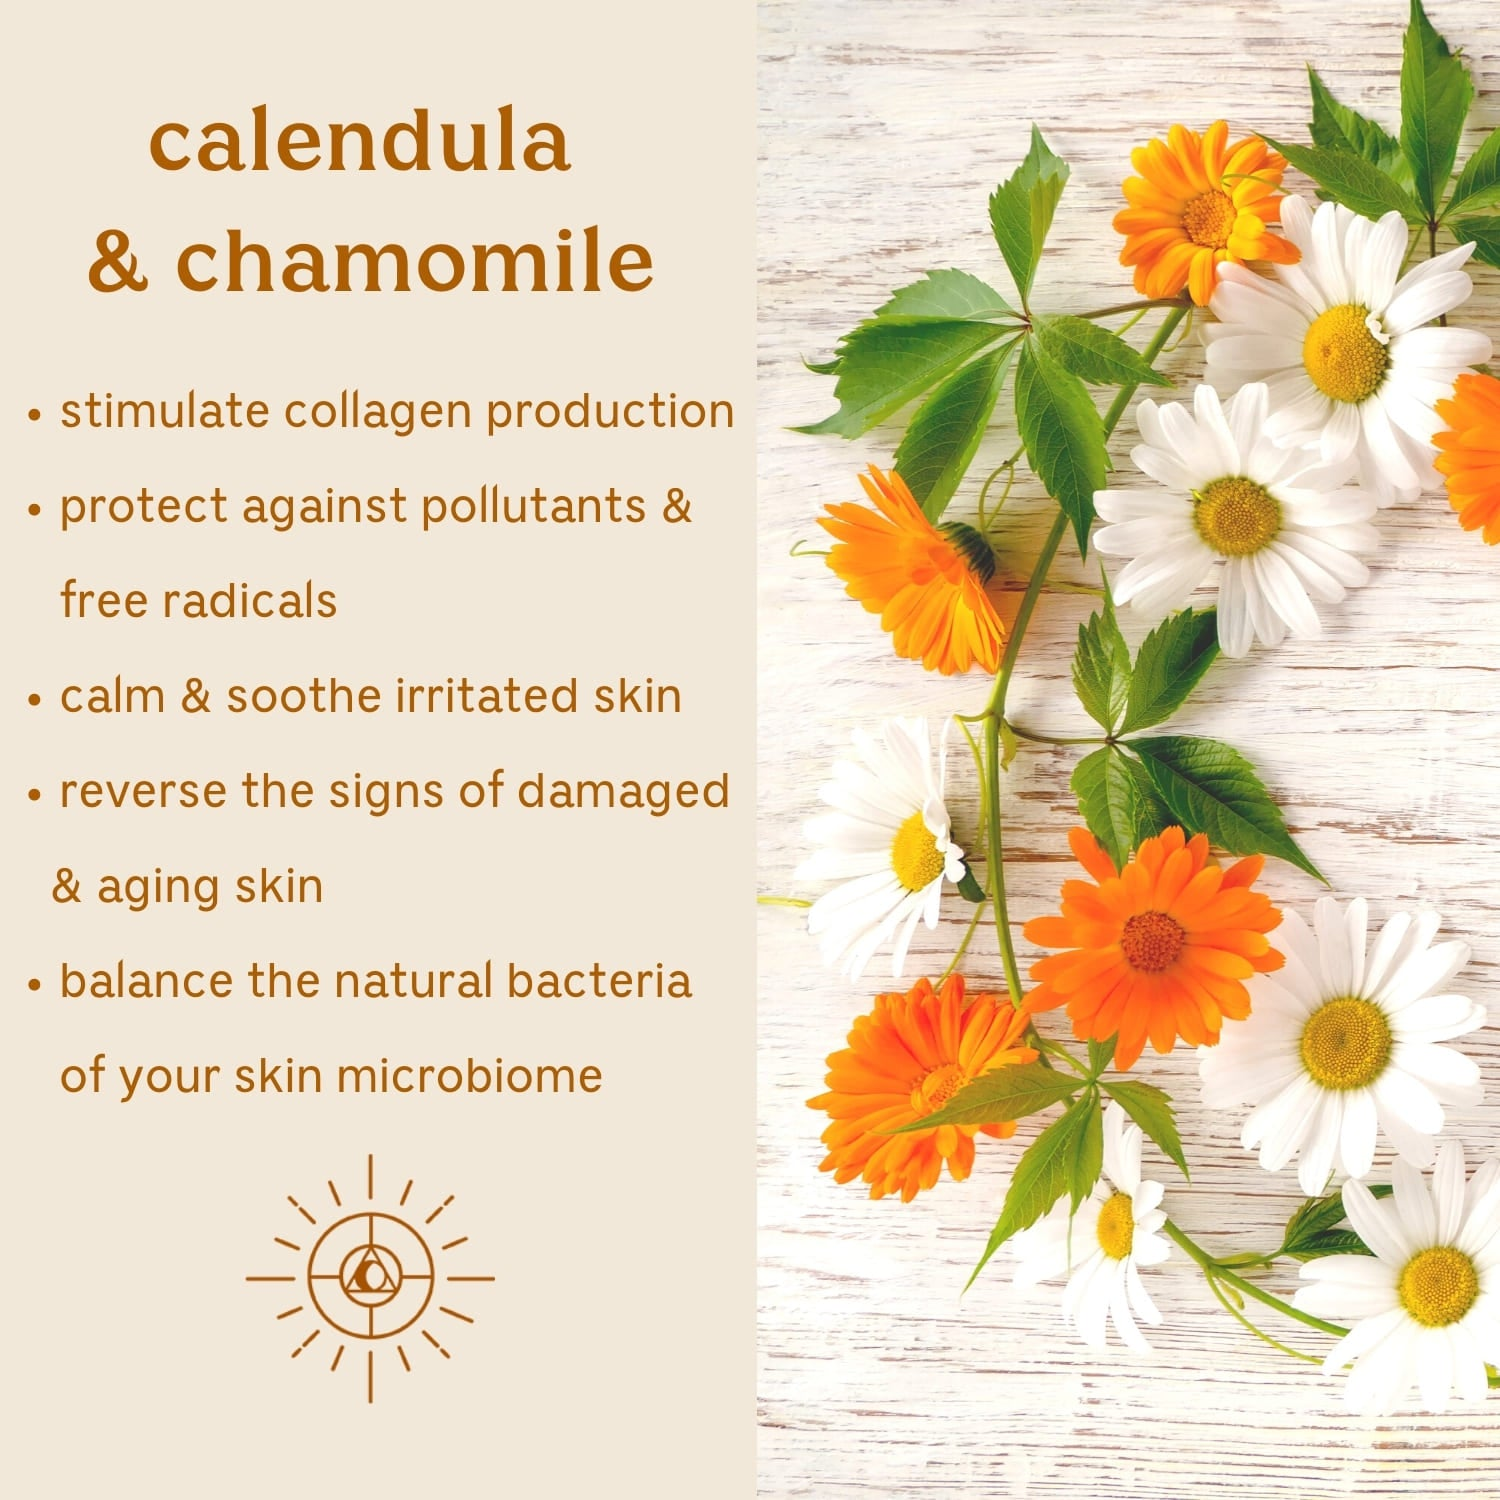 Solluna's Feel Good Eye Cream key ingredient benefit description. Calendula & Chamomile: Stimulate collagen production, Protect against pollutants & free radicals, Calm & soothe irritated skin, Reverse the signs of damaged & aging skin, Balance the natural bacteria of your skin microbiome